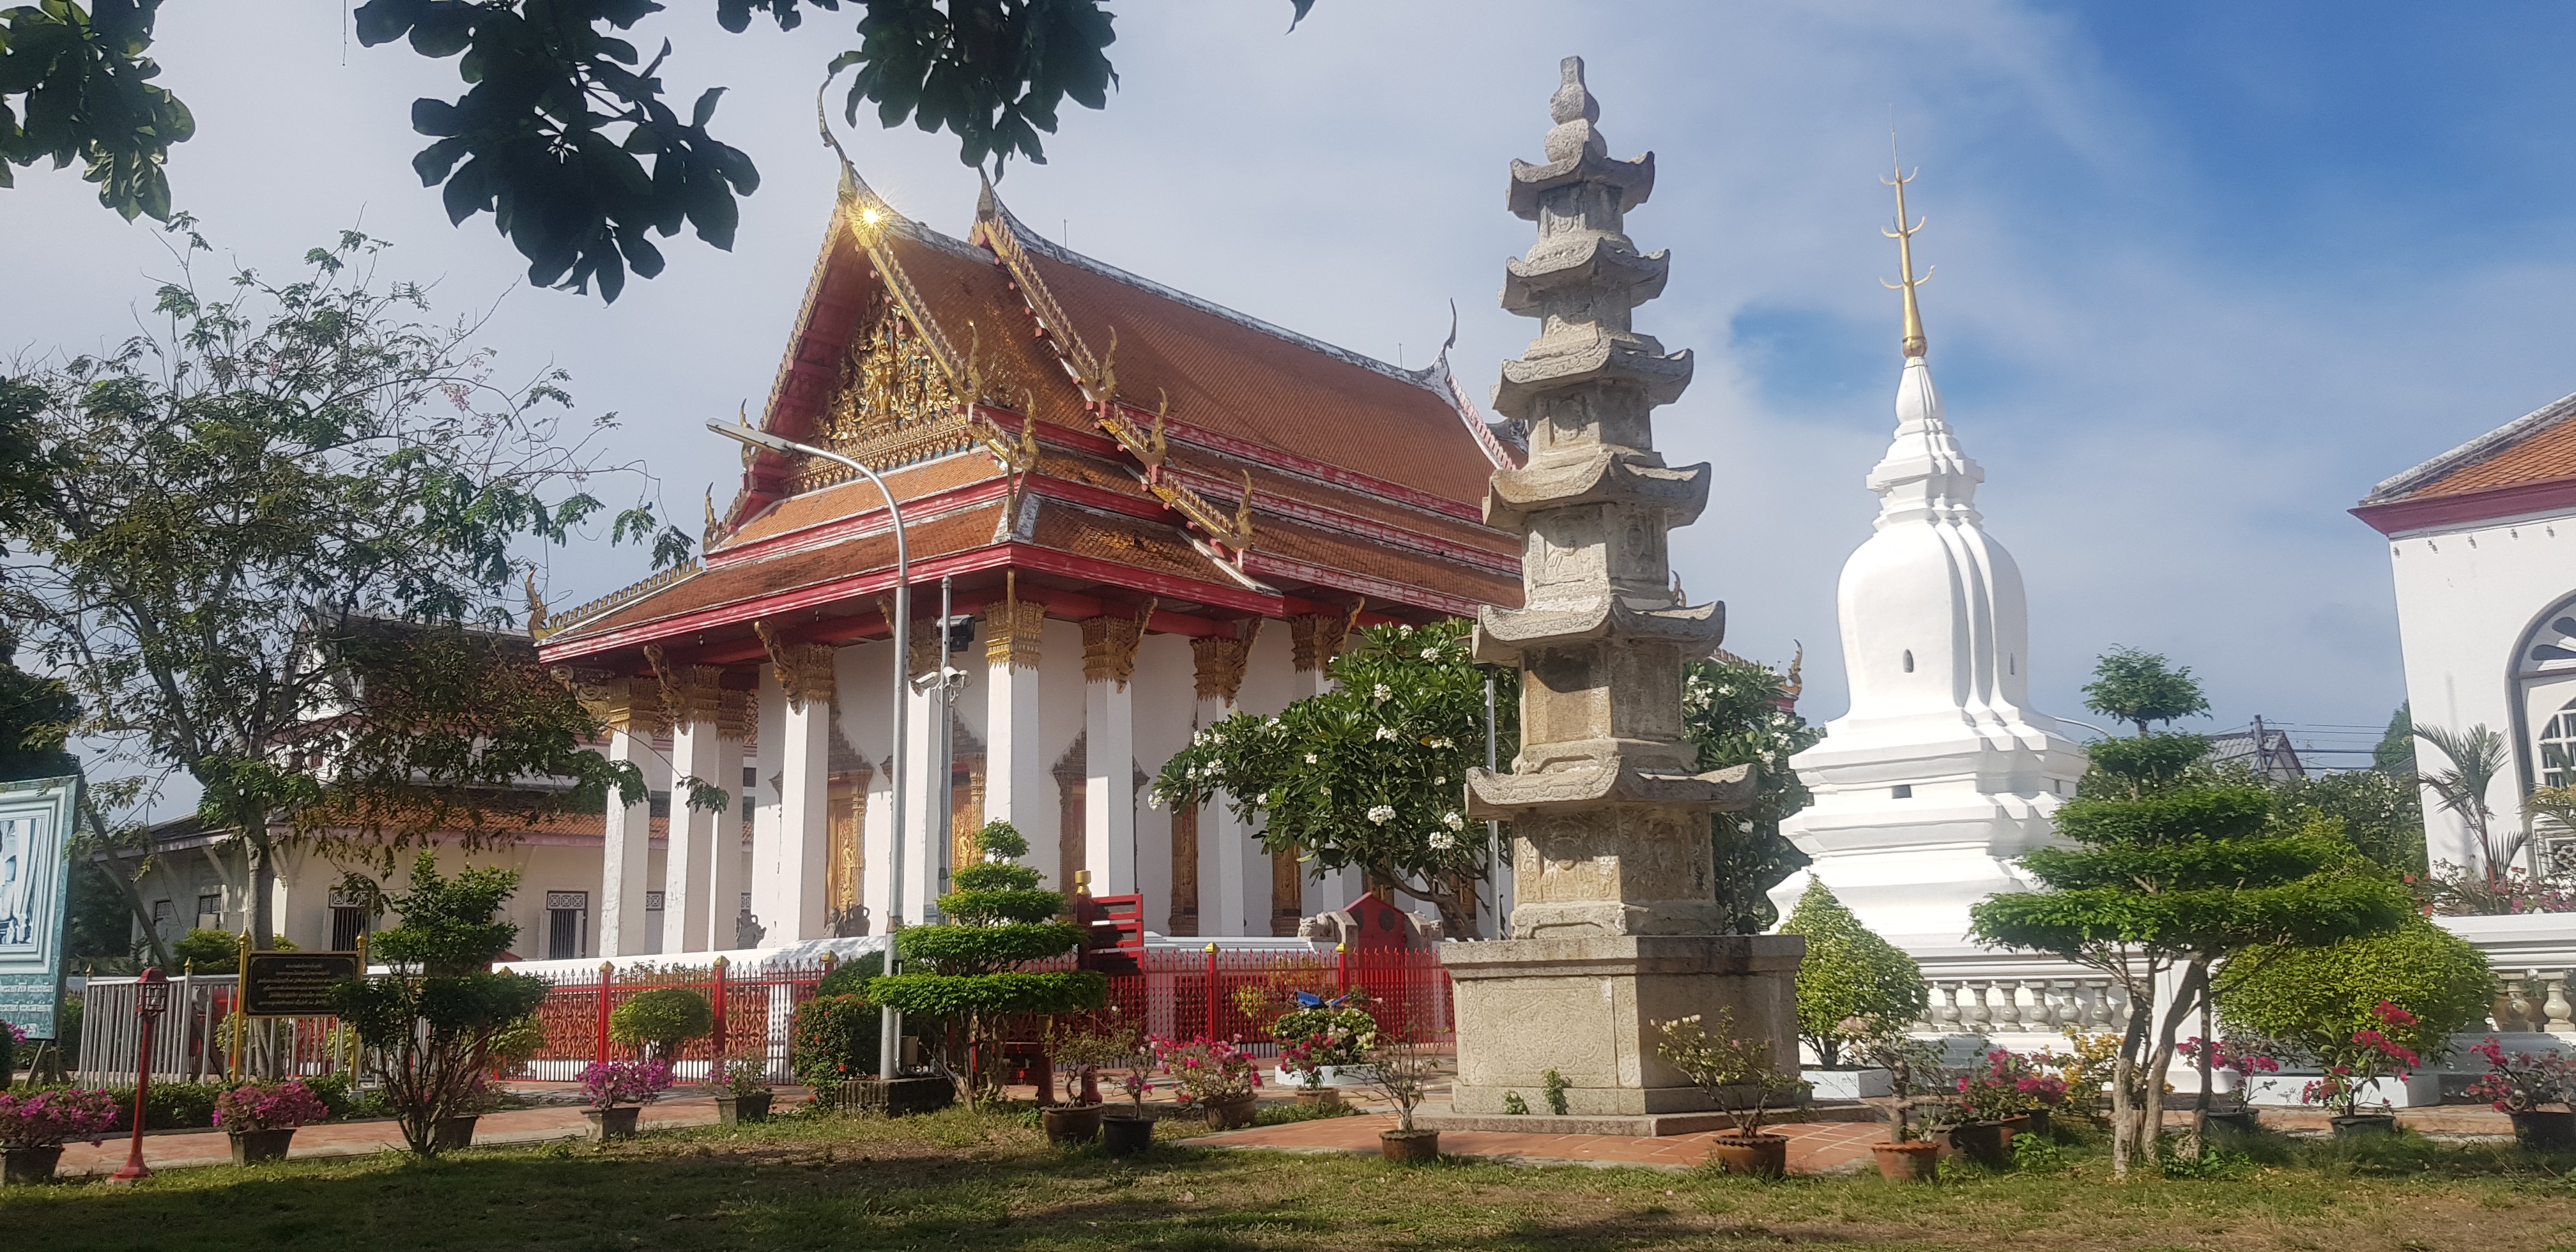 Songkhla's most important temple Wat Matchimawat